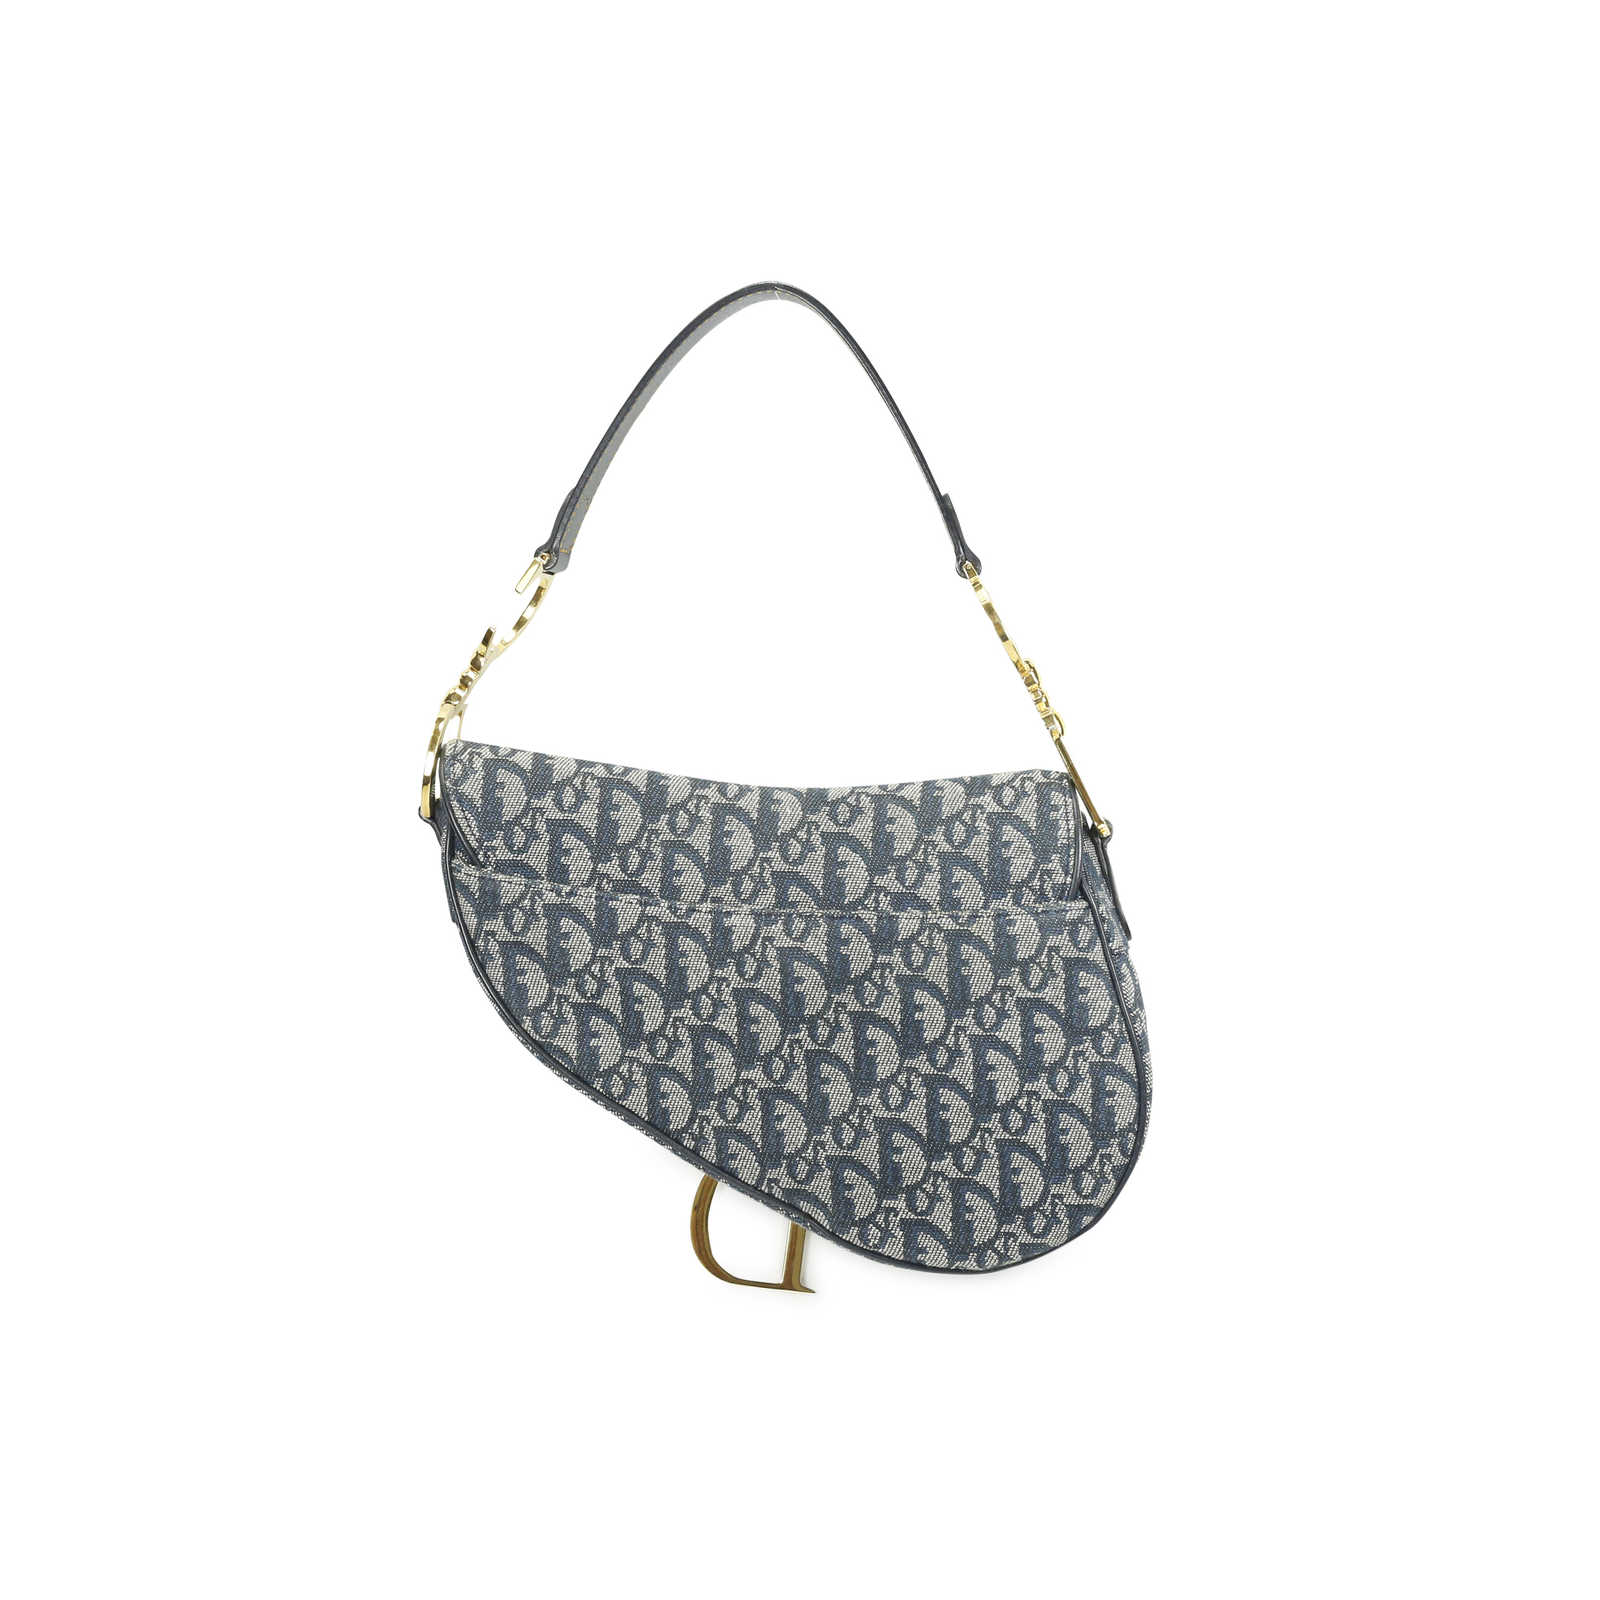 2f566a66855a ... Authentic Second Hand Christian Dior Saddle Bag (PSS-034-00001) -  Thumbnail ...